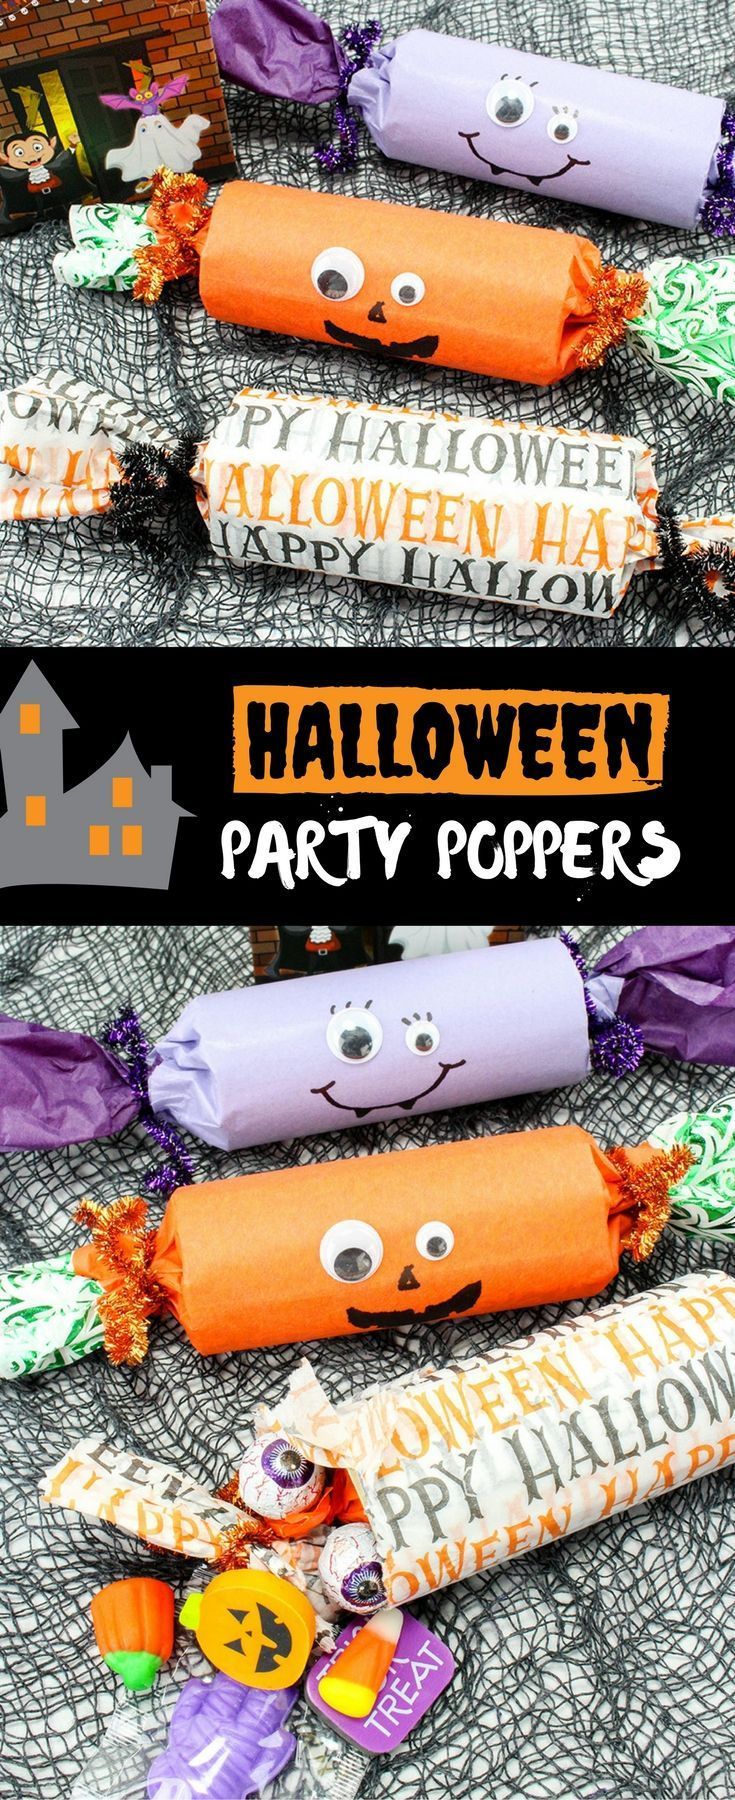 Halloween Party Poppers are sure to take your trick or treat game to a whole new fun. Filled with candies and other goodies, they're the ultimate Halloween party favors! via @lalainespins